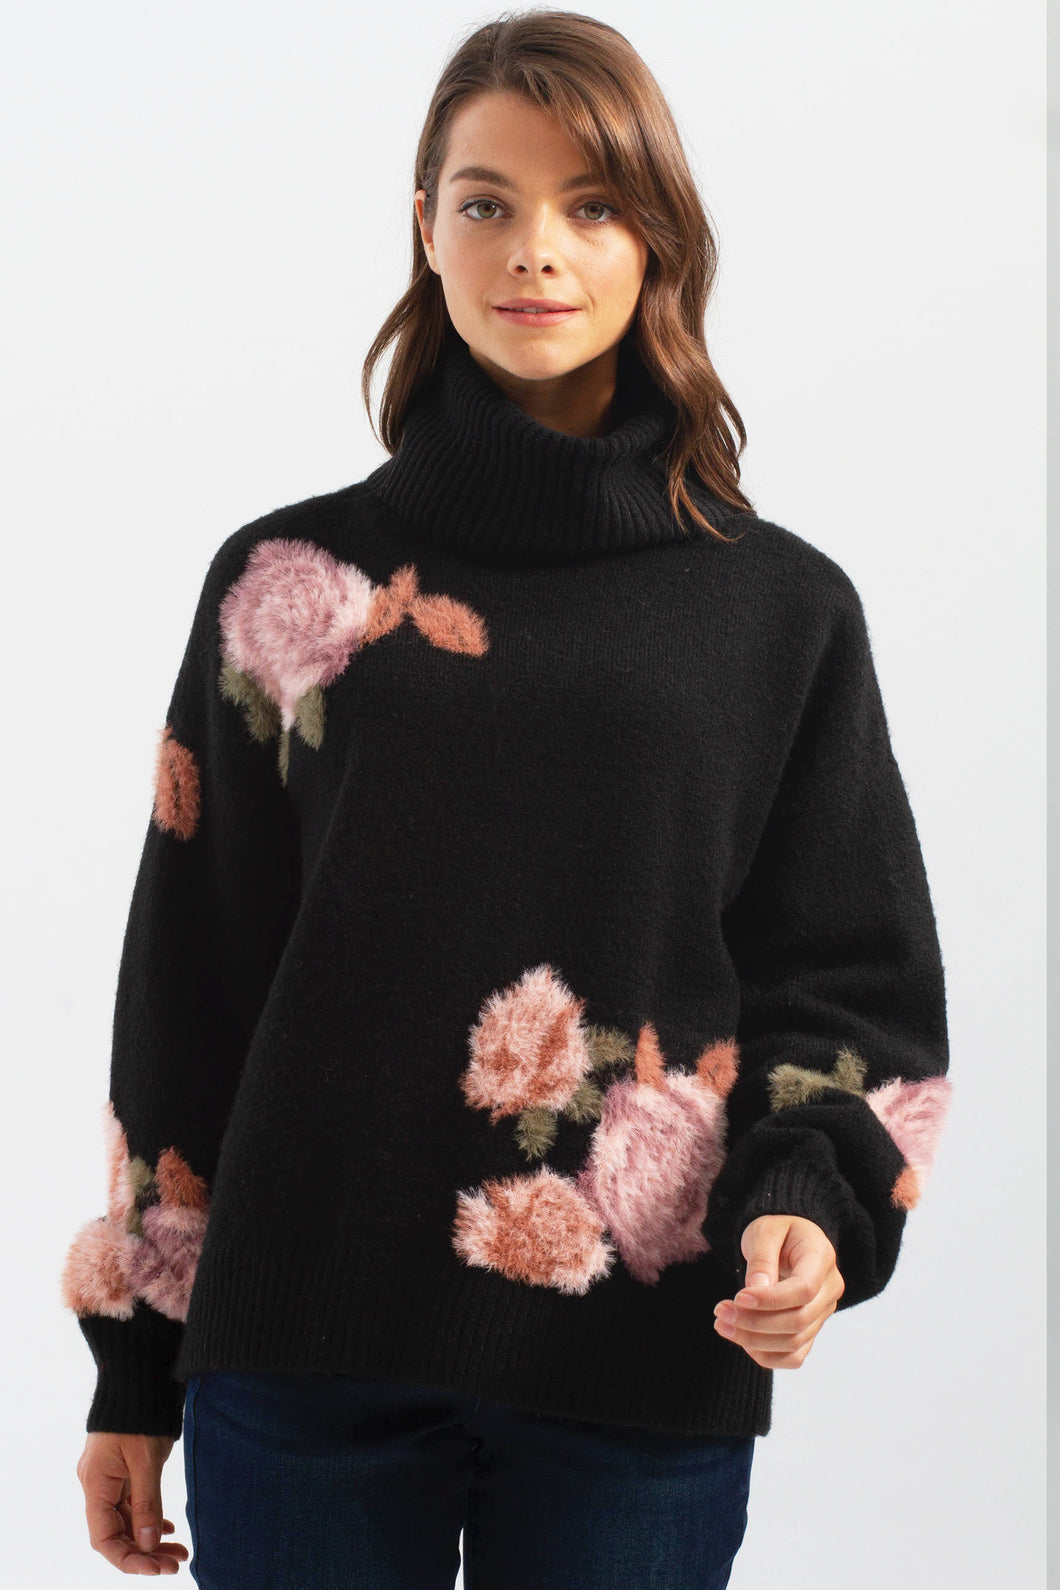 Printed Flowers Turtleneck Sweater